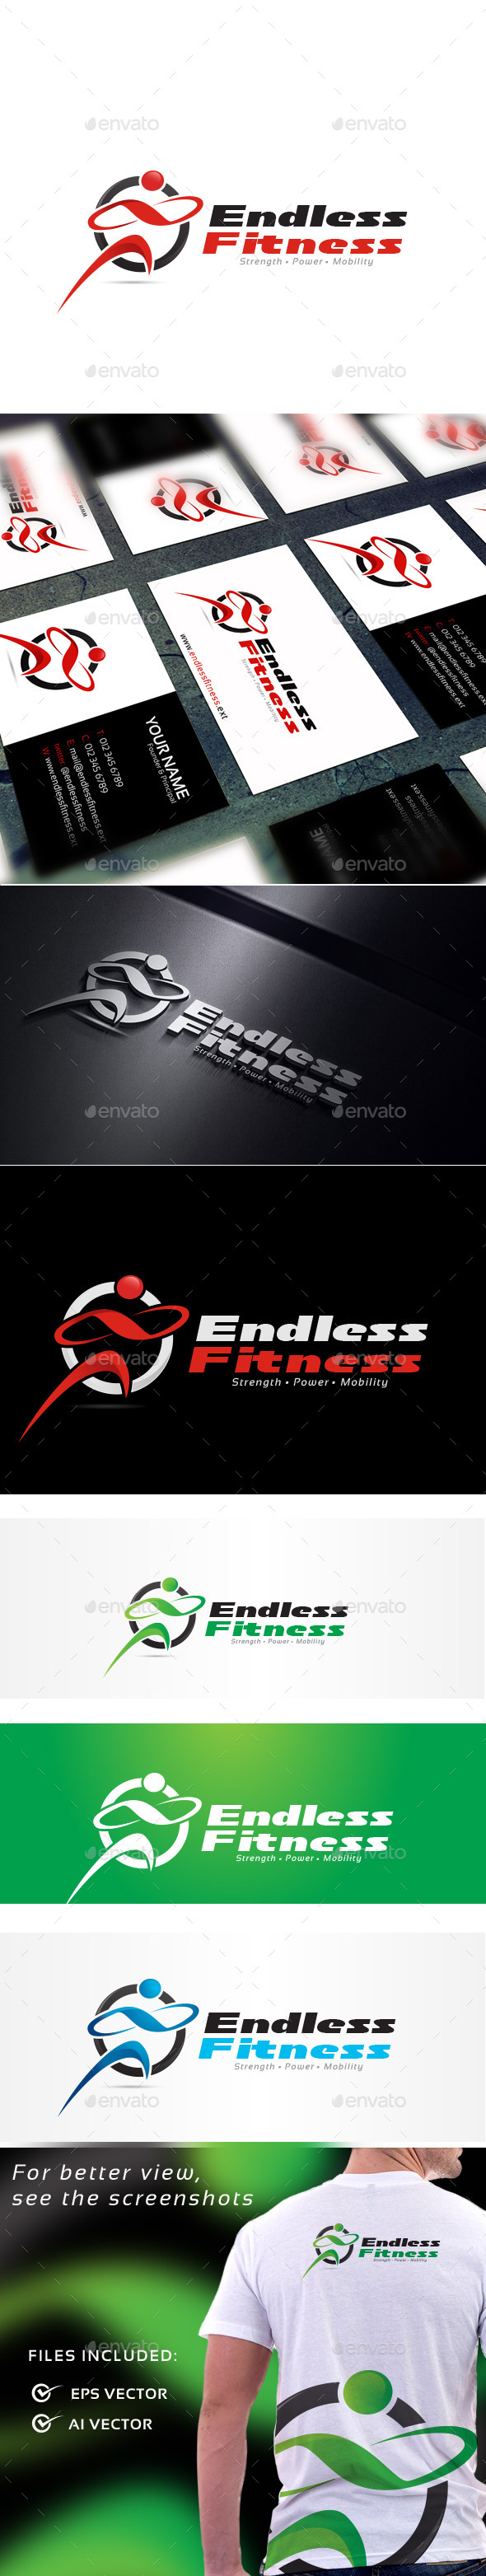 GraphicRiver Endless Fitness Logo Template 11020200